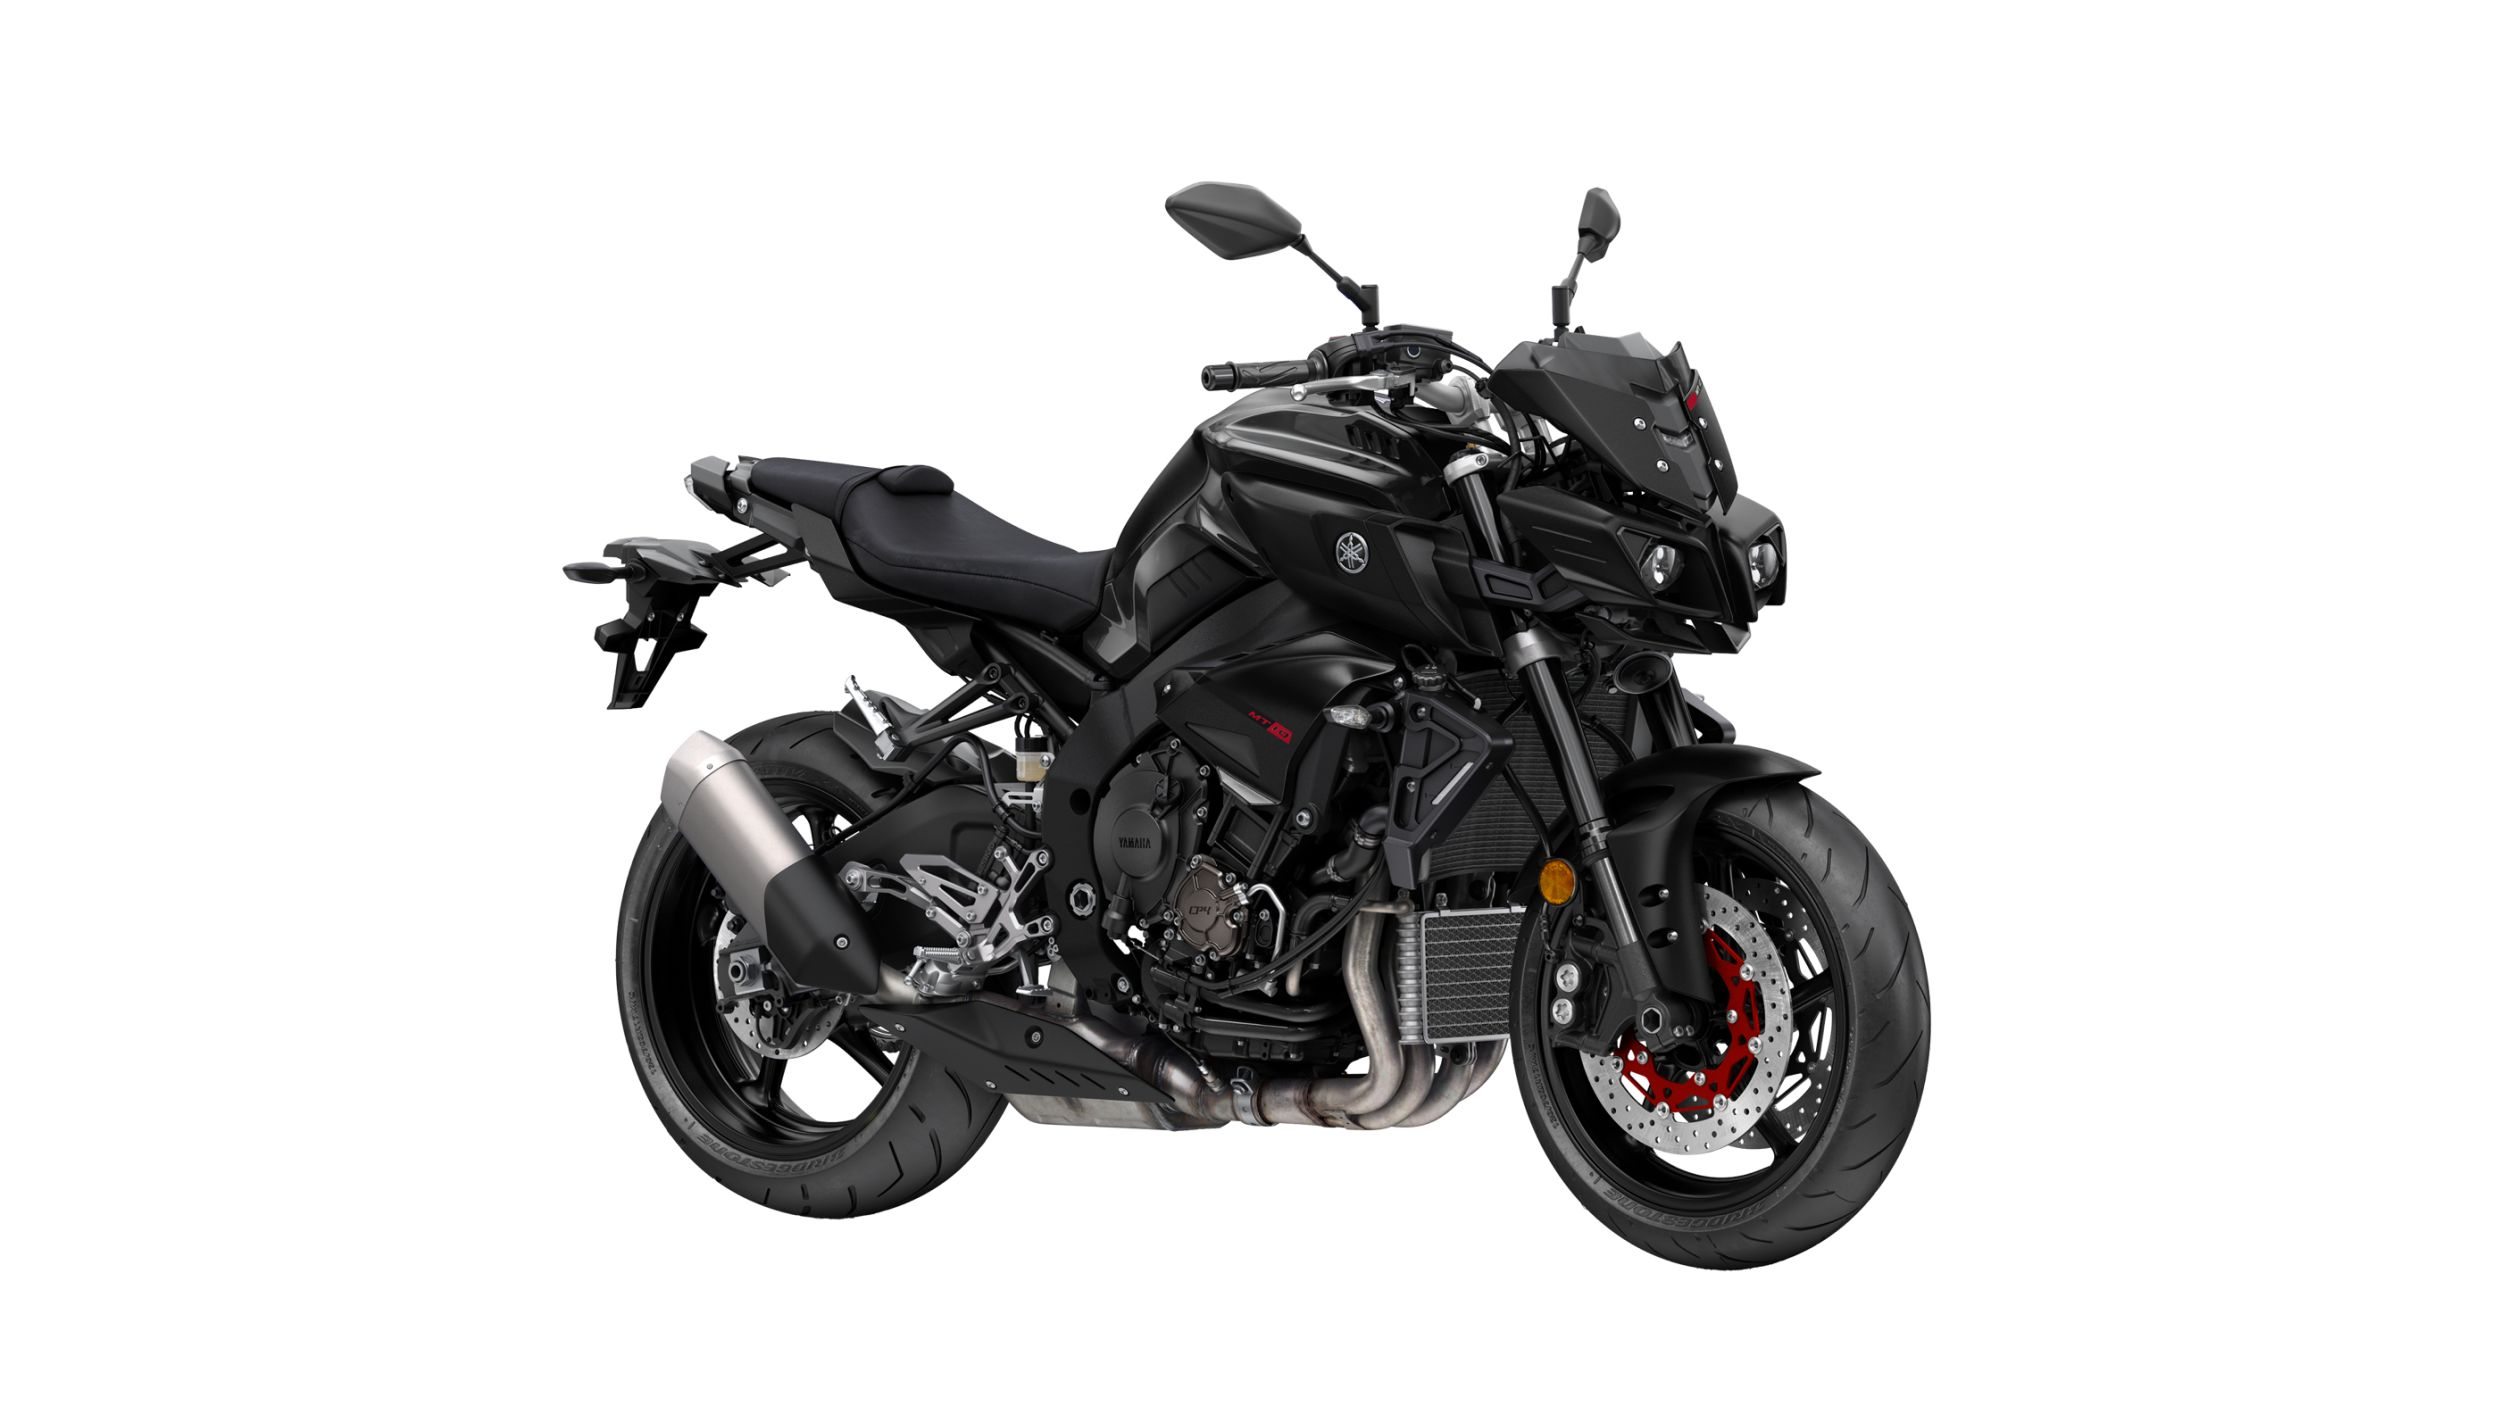 gebrauchte yamaha mt 10 motorr der kaufen. Black Bedroom Furniture Sets. Home Design Ideas